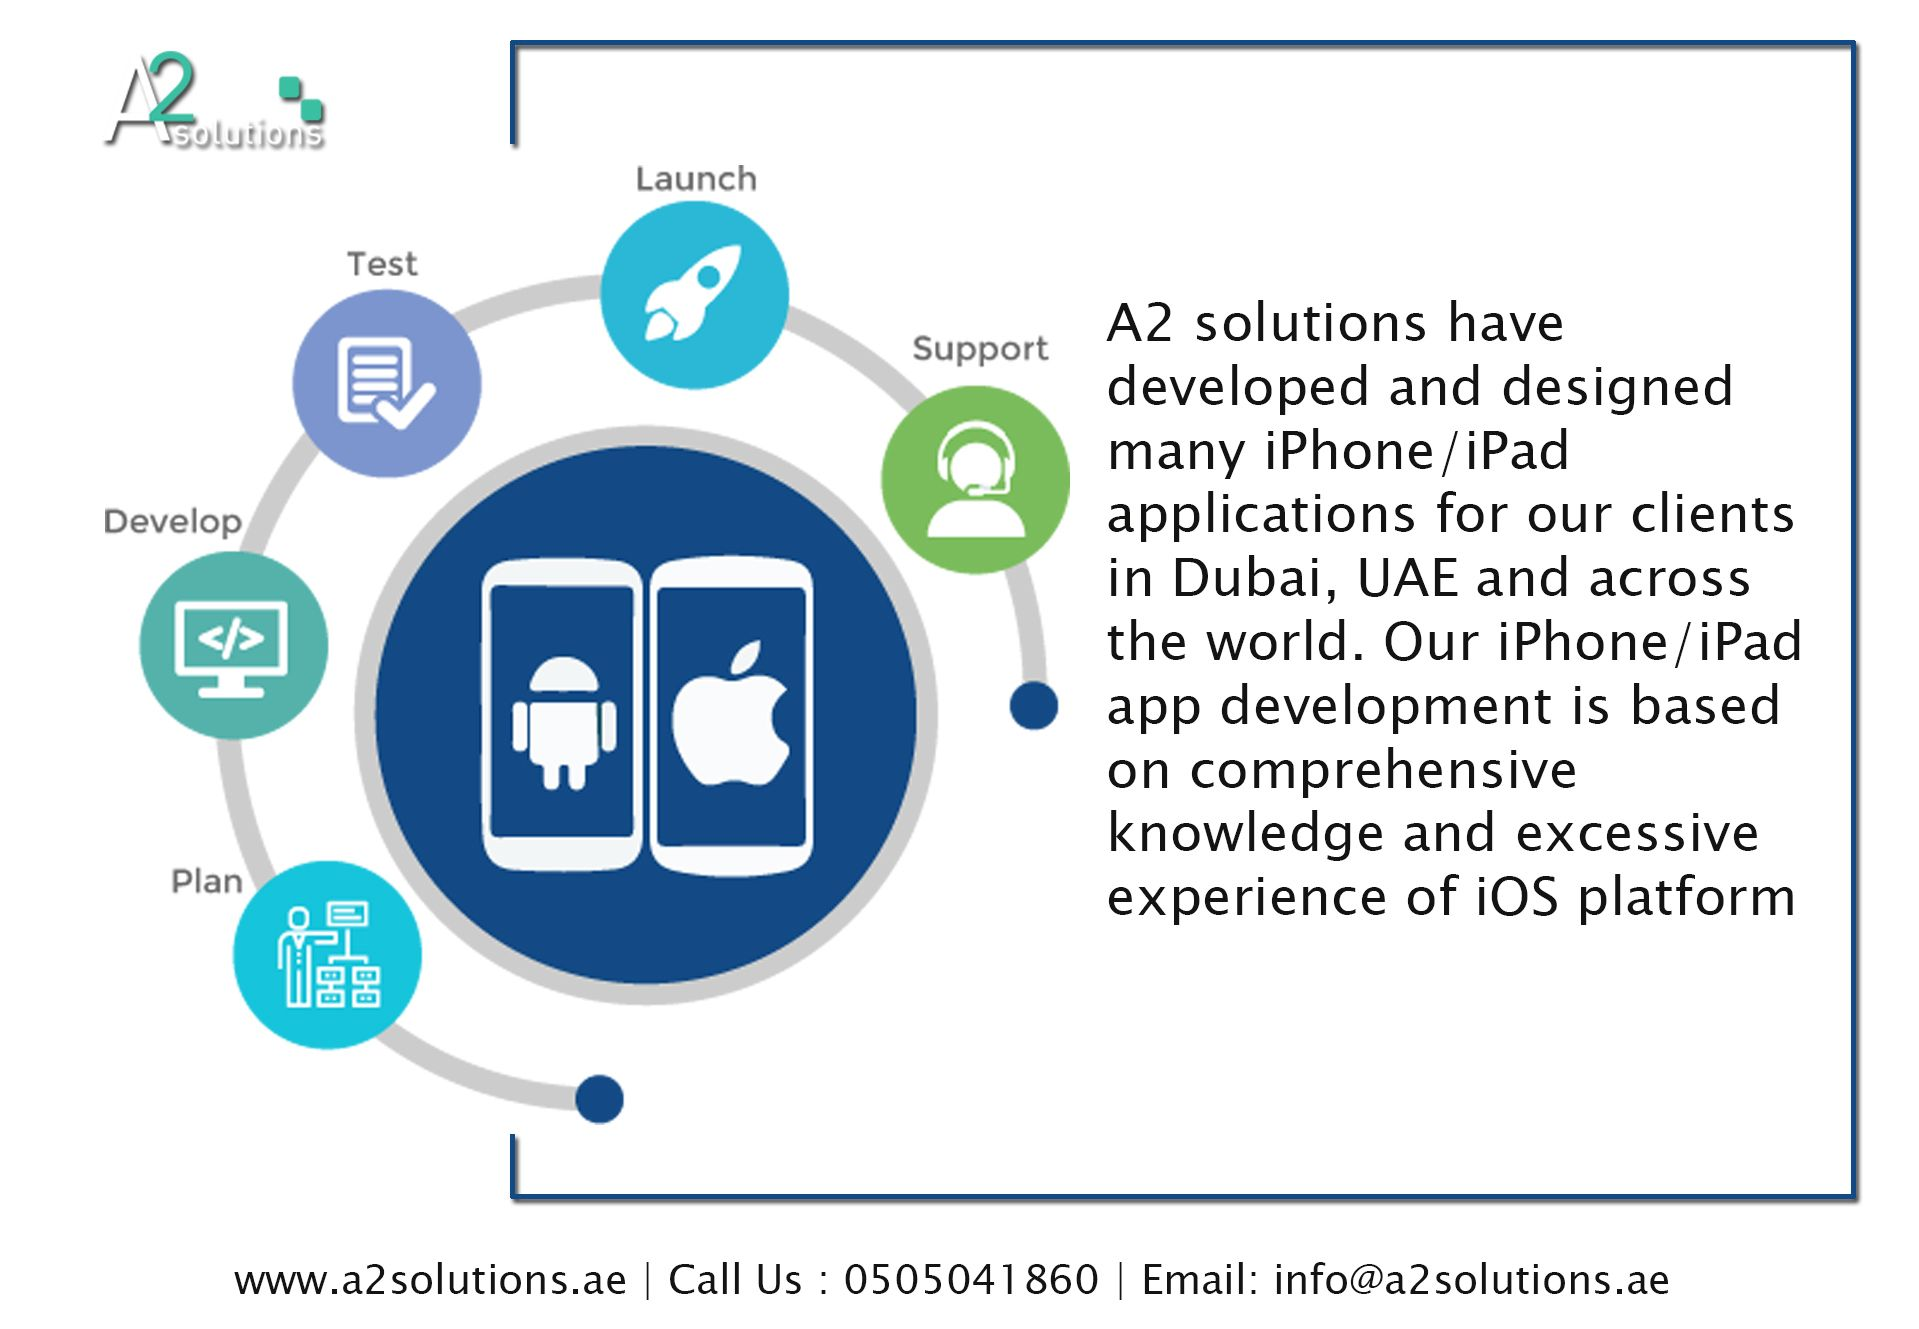 We are one of the leading Mobile application development